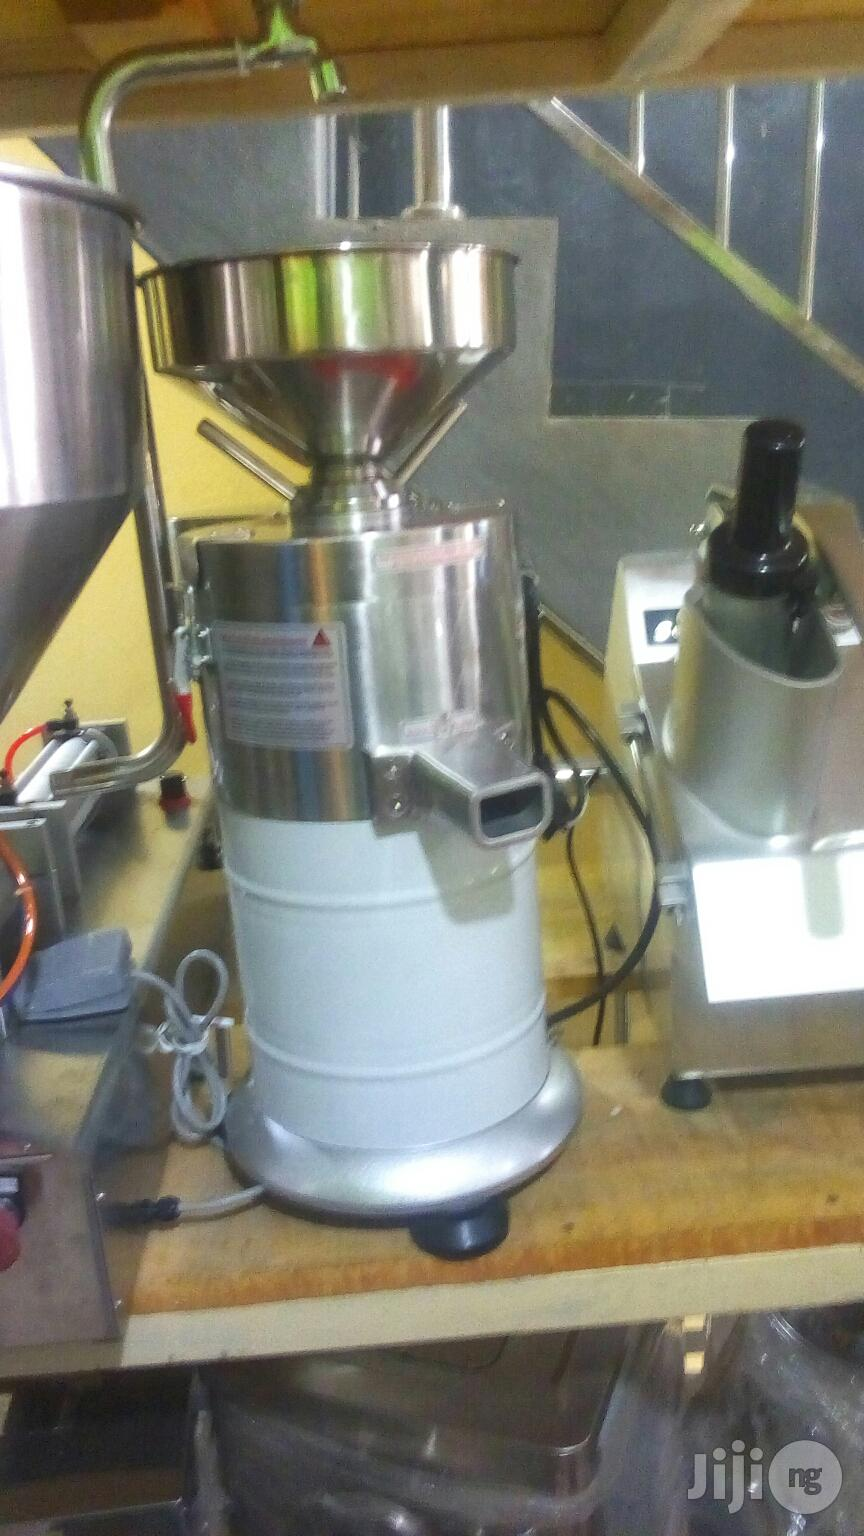 Paste Grinding Machine | Manufacturing Equipment for sale in Ojo, Lagos State, Nigeria